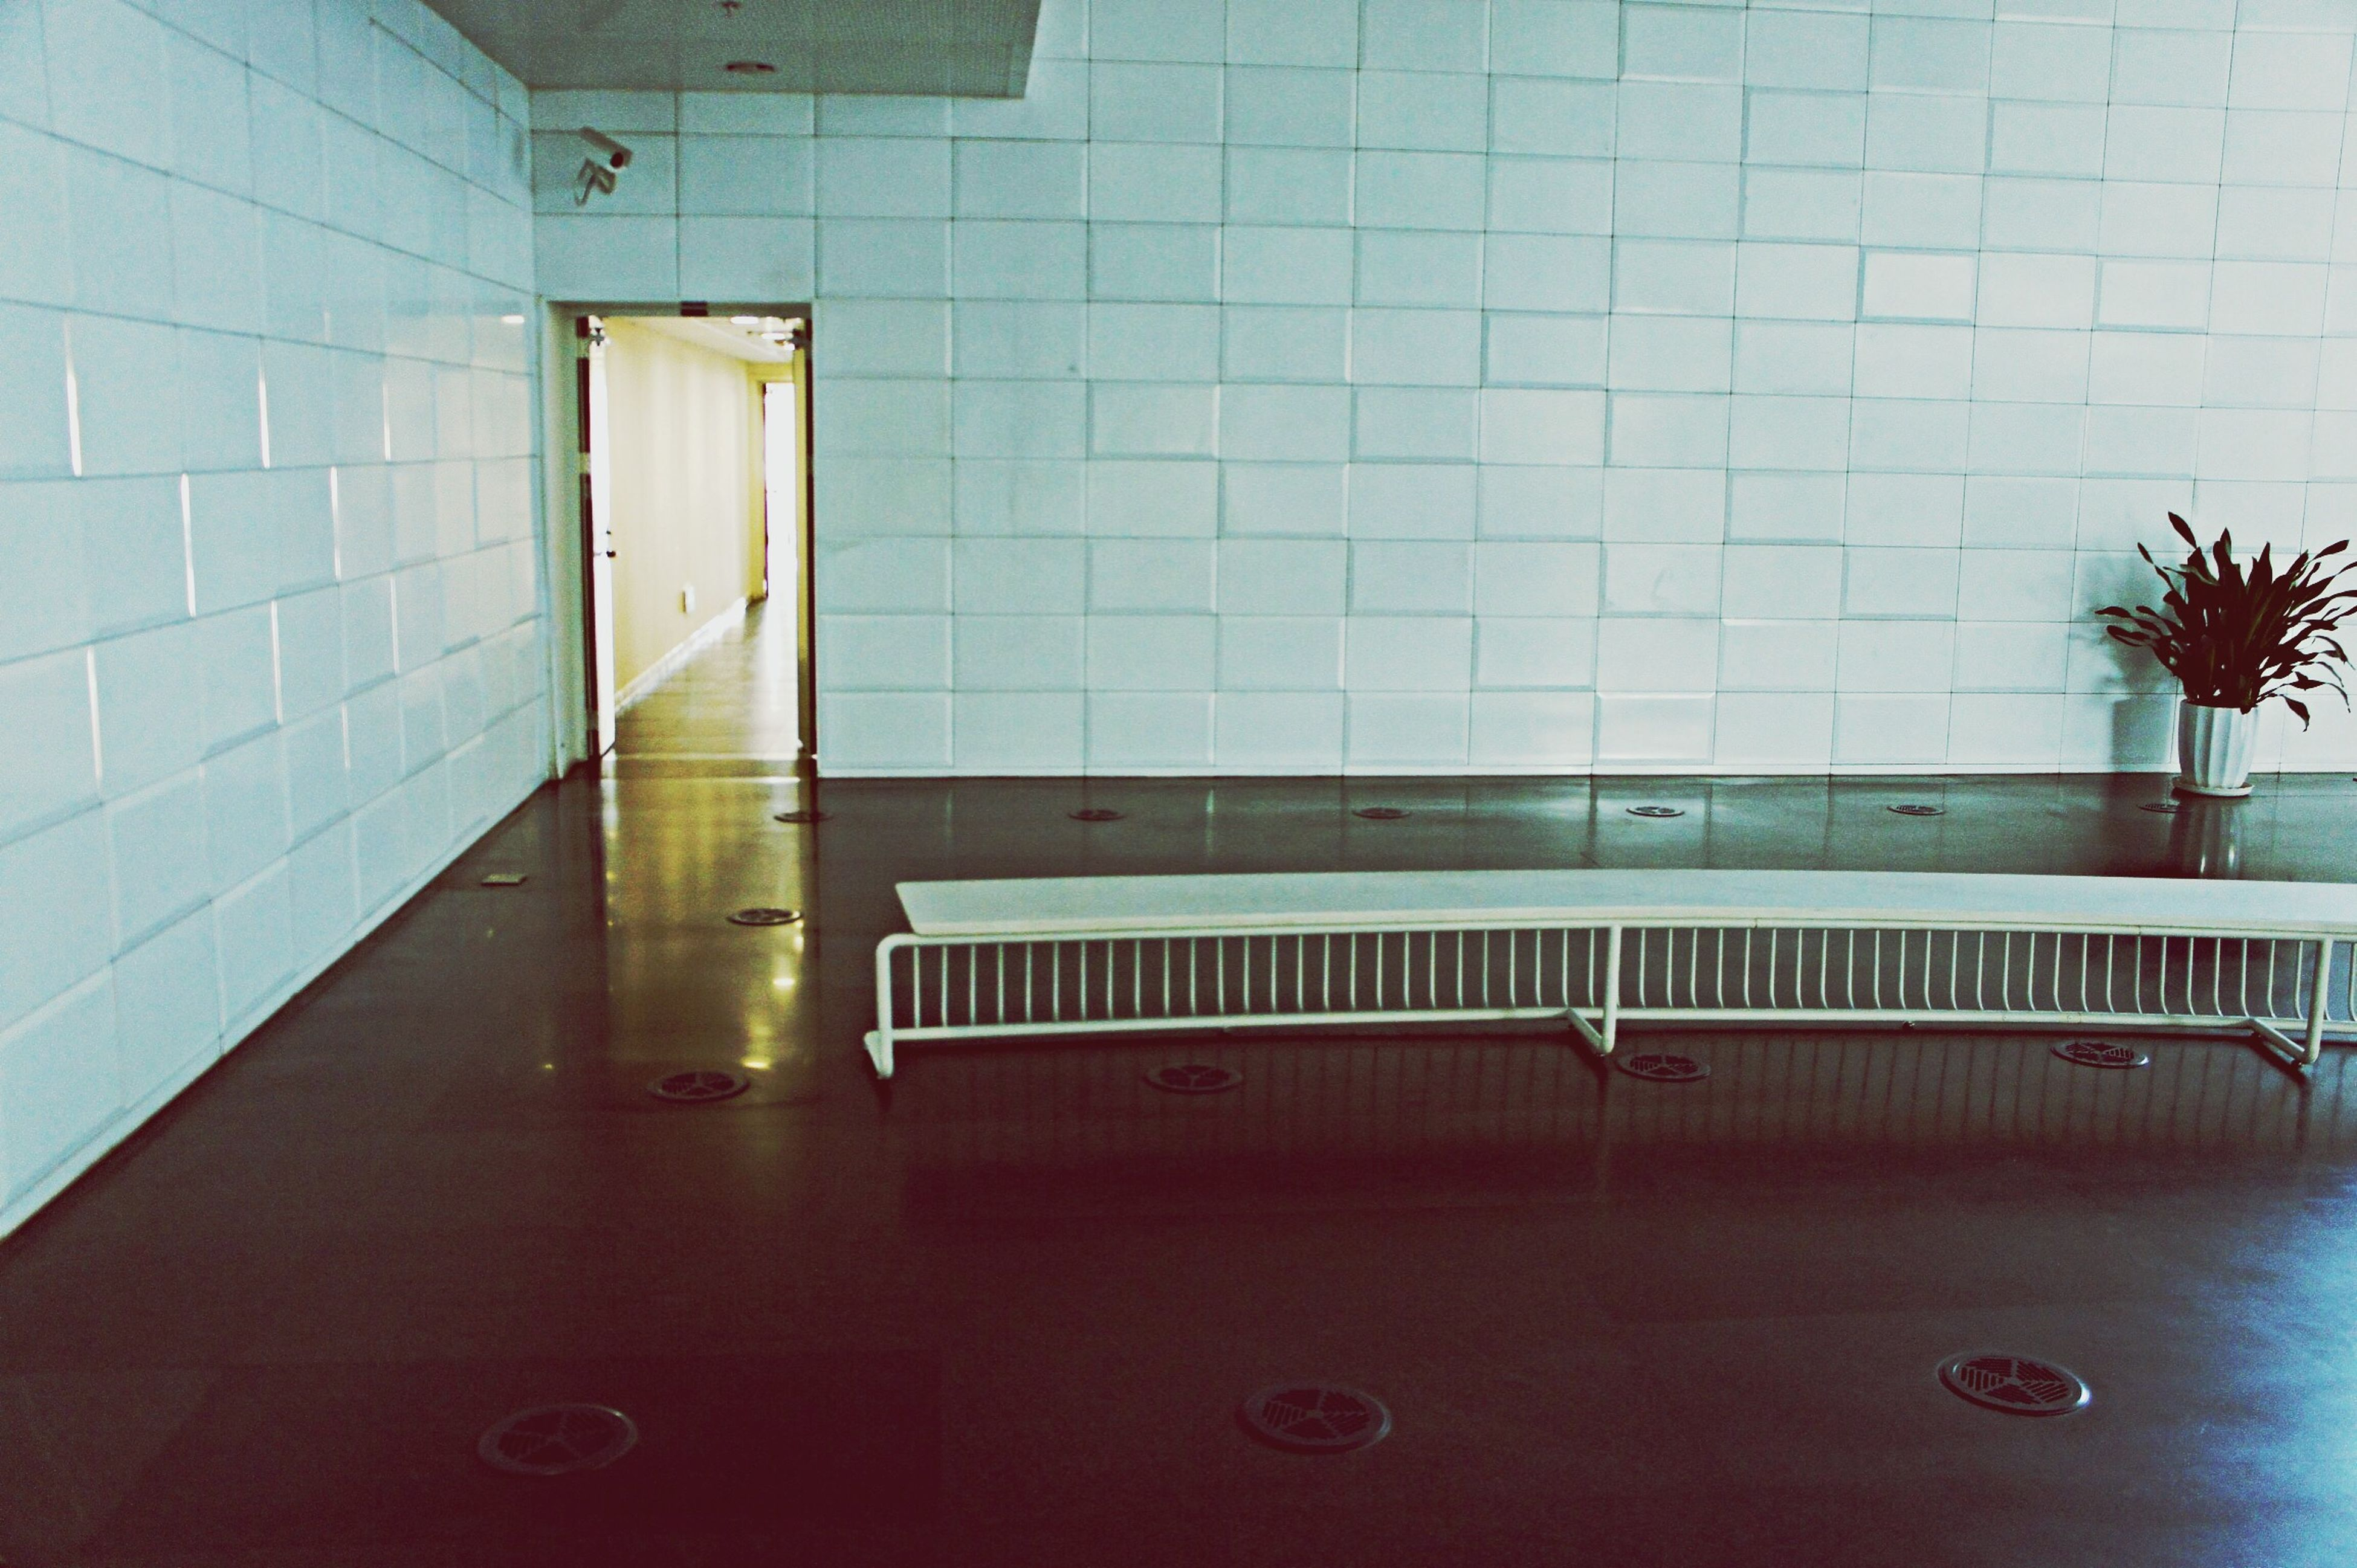 indoors, architecture, built structure, empty, wall - building feature, window, door, reflection, wall, tile, tiled floor, flooring, absence, no people, interior, modern, glass - material, building, illuminated, ceiling